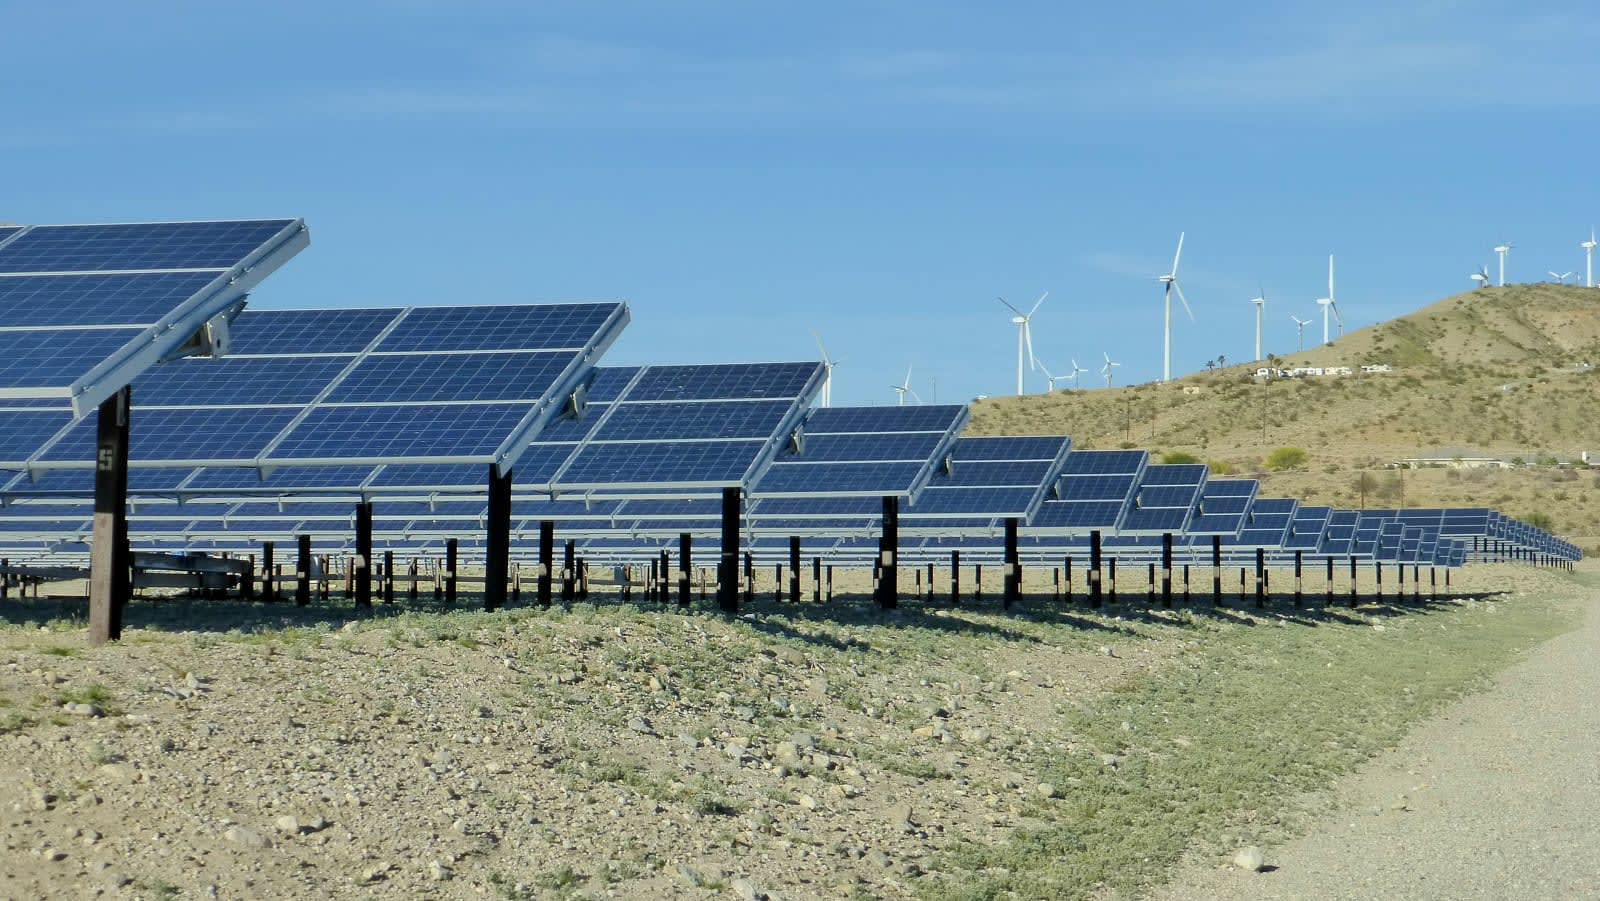 Recommended Reading: Replacing crops with solar panels